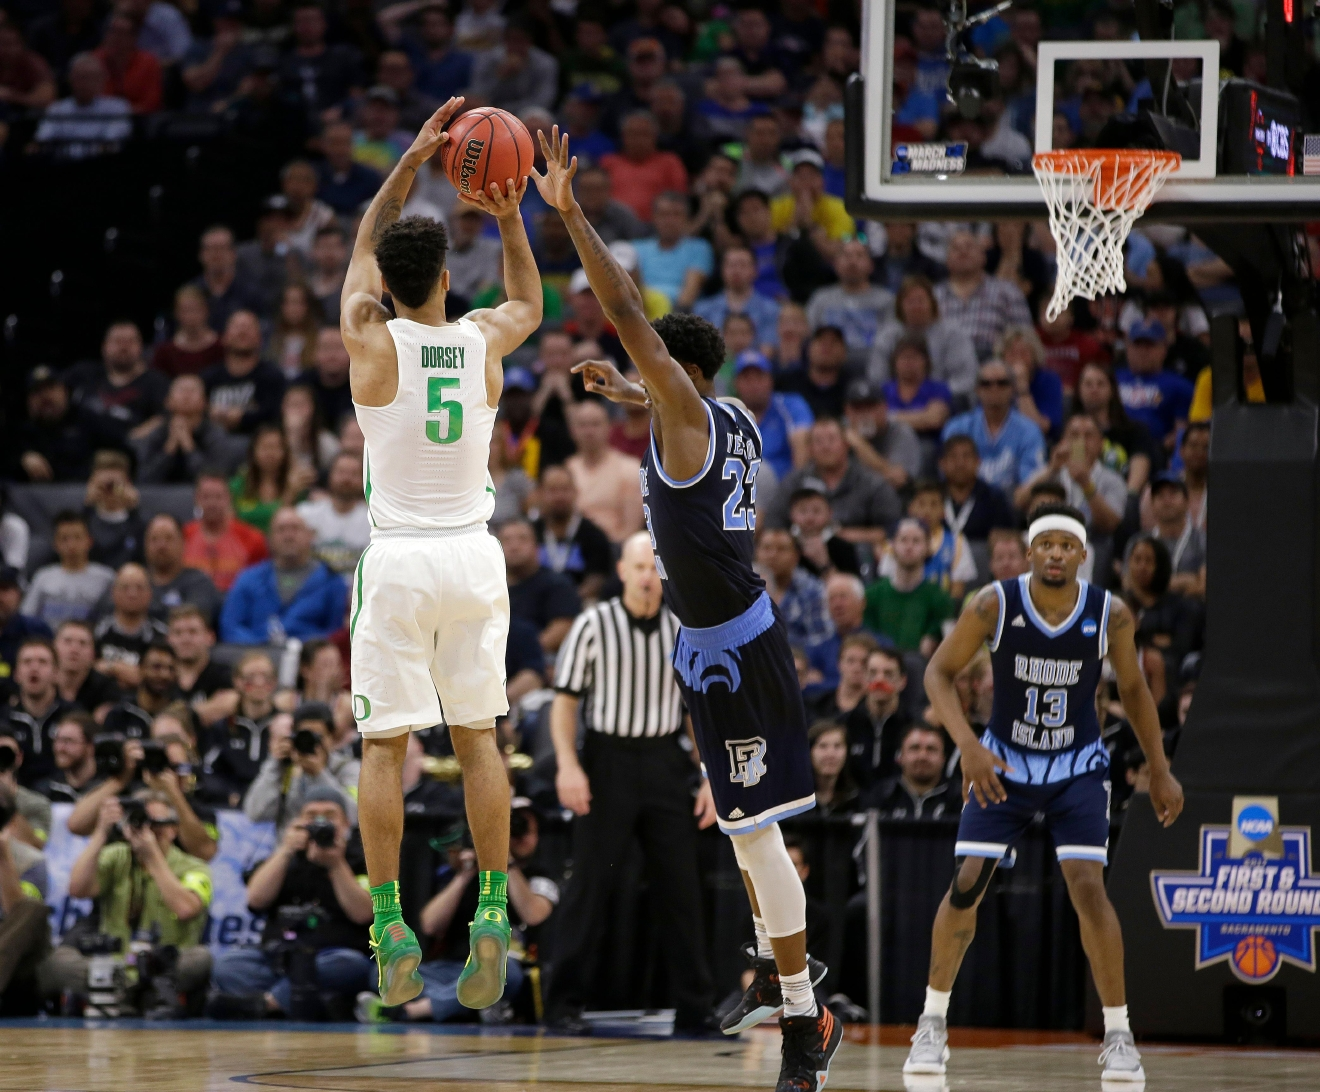 Oregon guard Tyler Dorsey, left, goes up for a 3-pointer against Rhode Island forward Kuran Iverson, second from left, in the final minute of Oregon's 75-72 win in a second-round game of the NCAA men's college basketball tournament in Sacramento, Calif., Sunday, March 19, 2017. (AP Photo/Rich Pedroncelli)